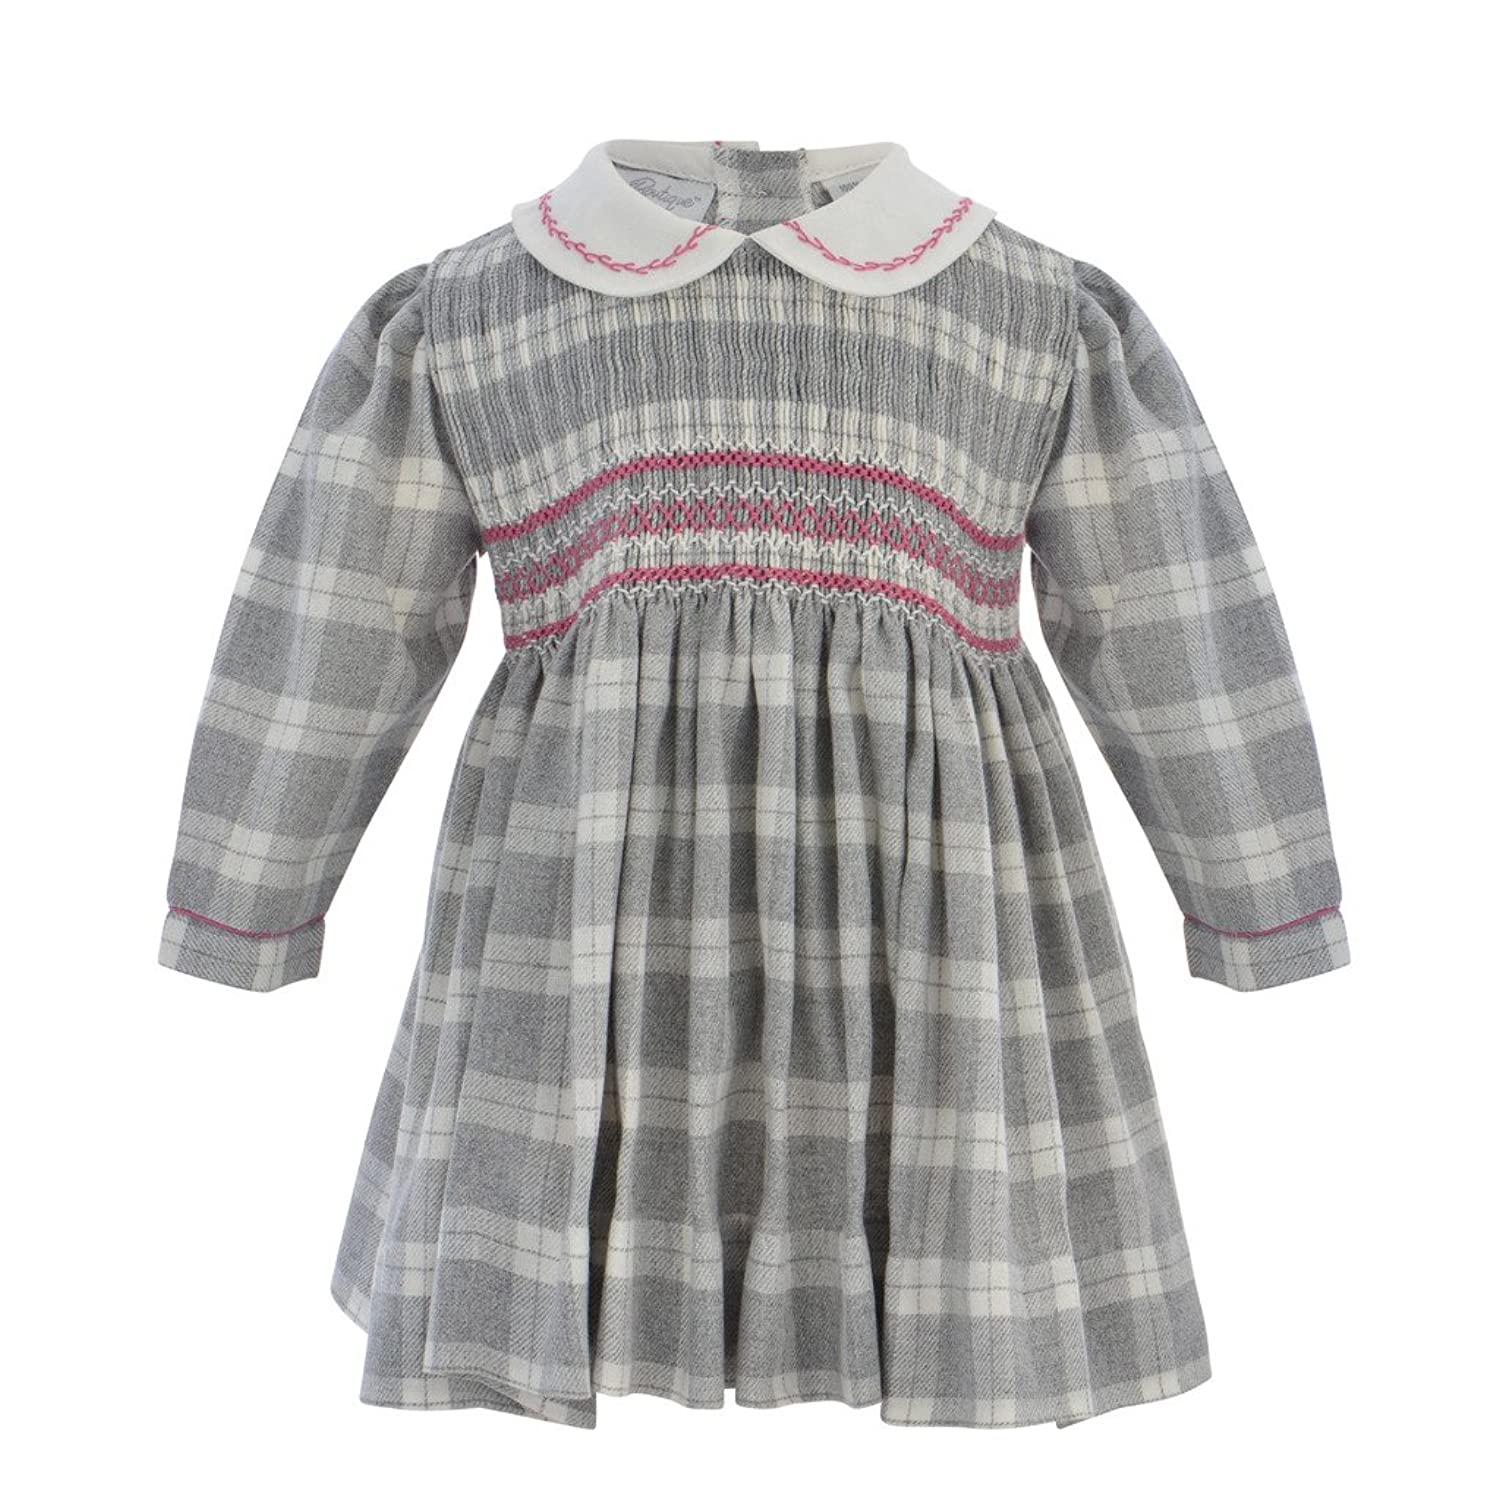 Kids 1950s Clothing & Costumes: Girls, Boys, Toddlers Baby Girls Plaid Long Sleeve Hand Smocked Dress $52.00 AT vintagedancer.com